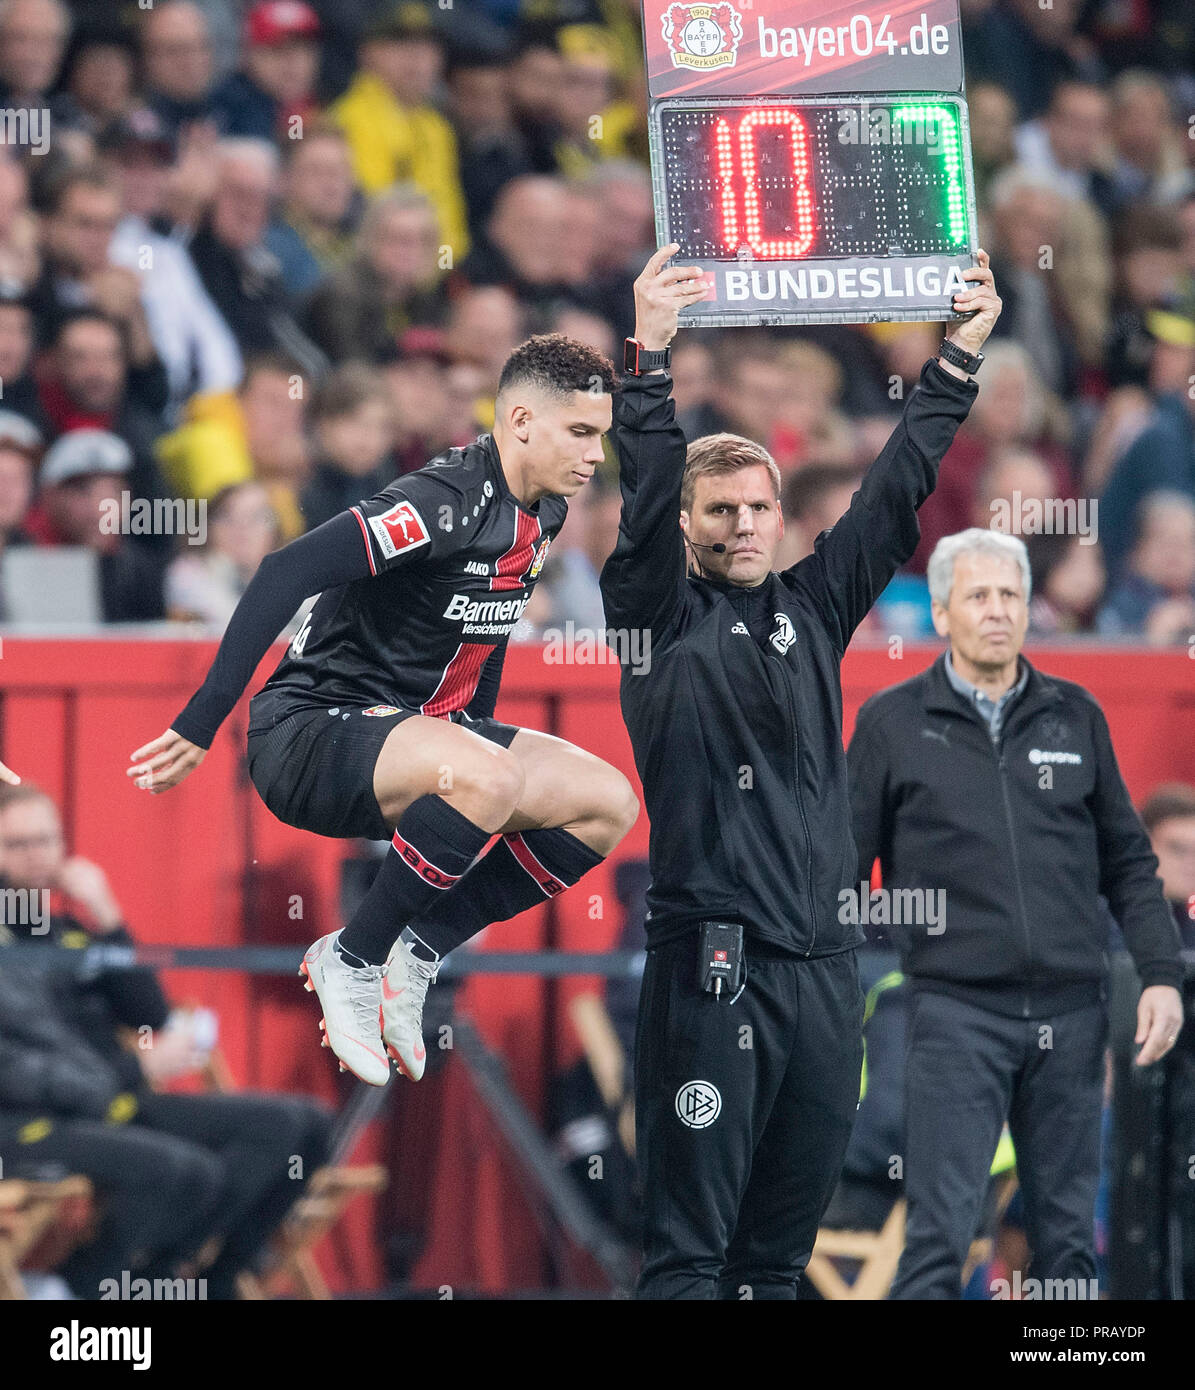 Leverkusen, Deutschland. 29th Sep, 2018. Substitutions PAULINHO (LEV) jumps in the air, Soccer 1.Bundesliga, 6.matchday, Bayer 04 Leverkusen (LEV) - Borussia Dortmund (DO) 2: 4, on 29.09.2018 in Leverkusen/Germany. ## DFL regulations prohibit any use of photographs as image sequences and/or quasi-video ##   usage worldwide Credit: dpa/Alamy Live News - Stock Image